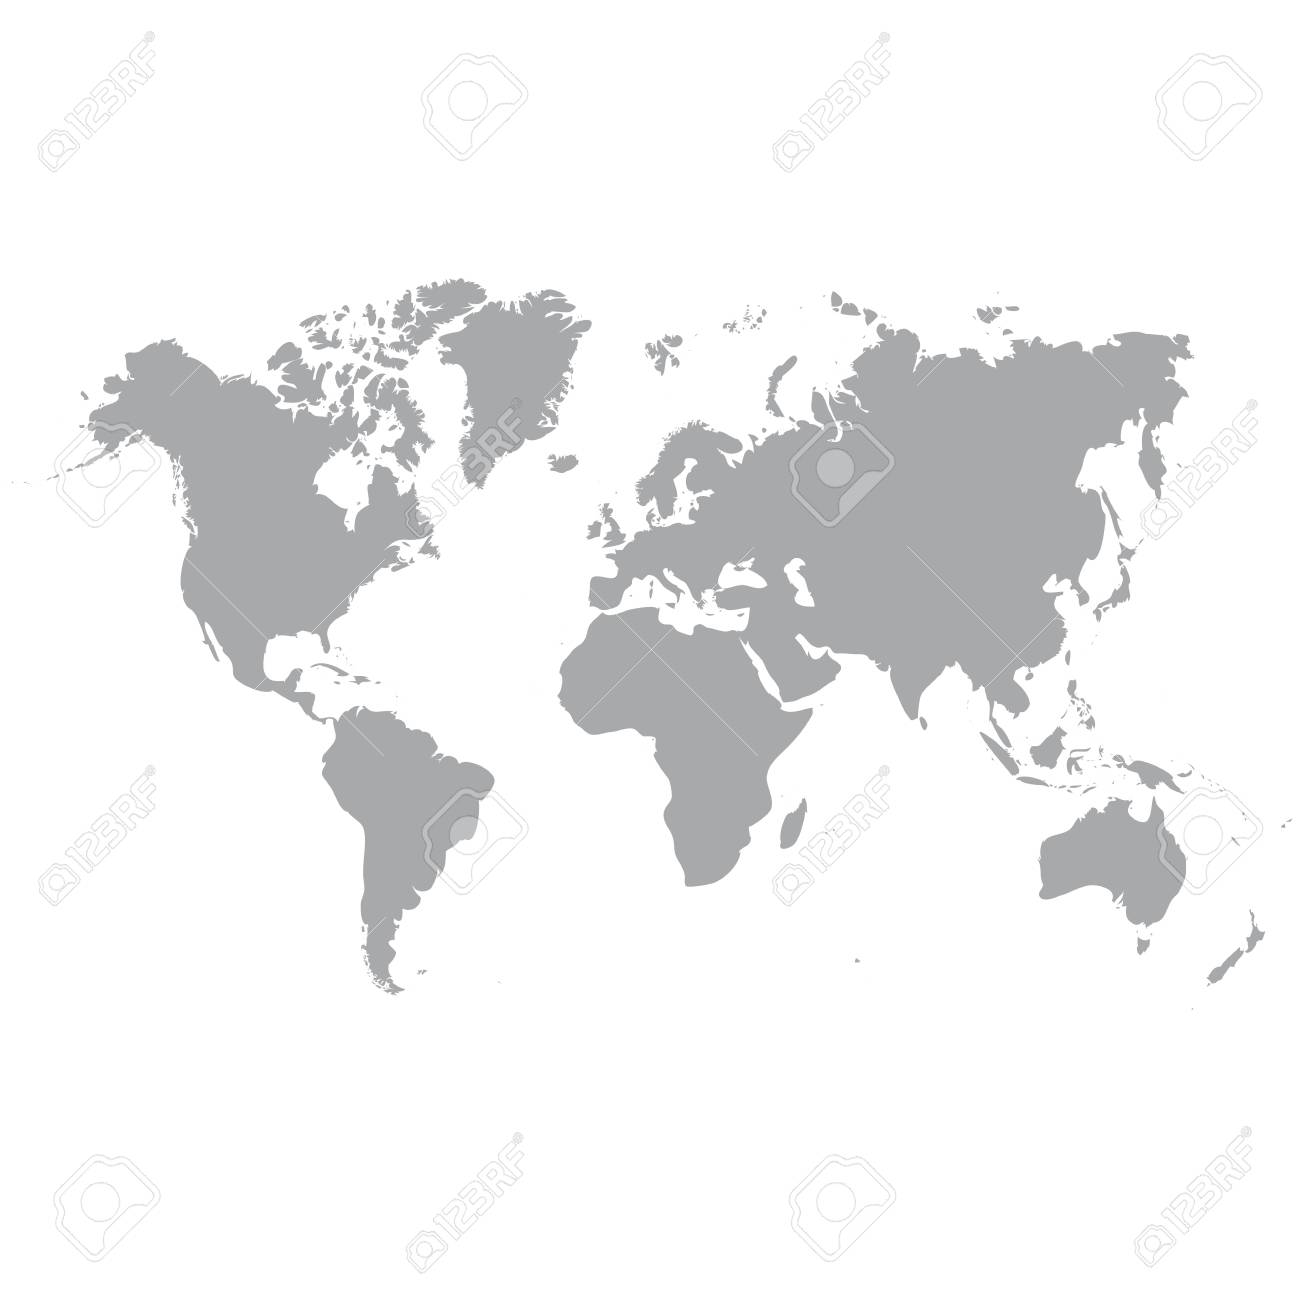 Map Of The World Clear.Clear Grey Map Of The World Isolated On Background Blank Map